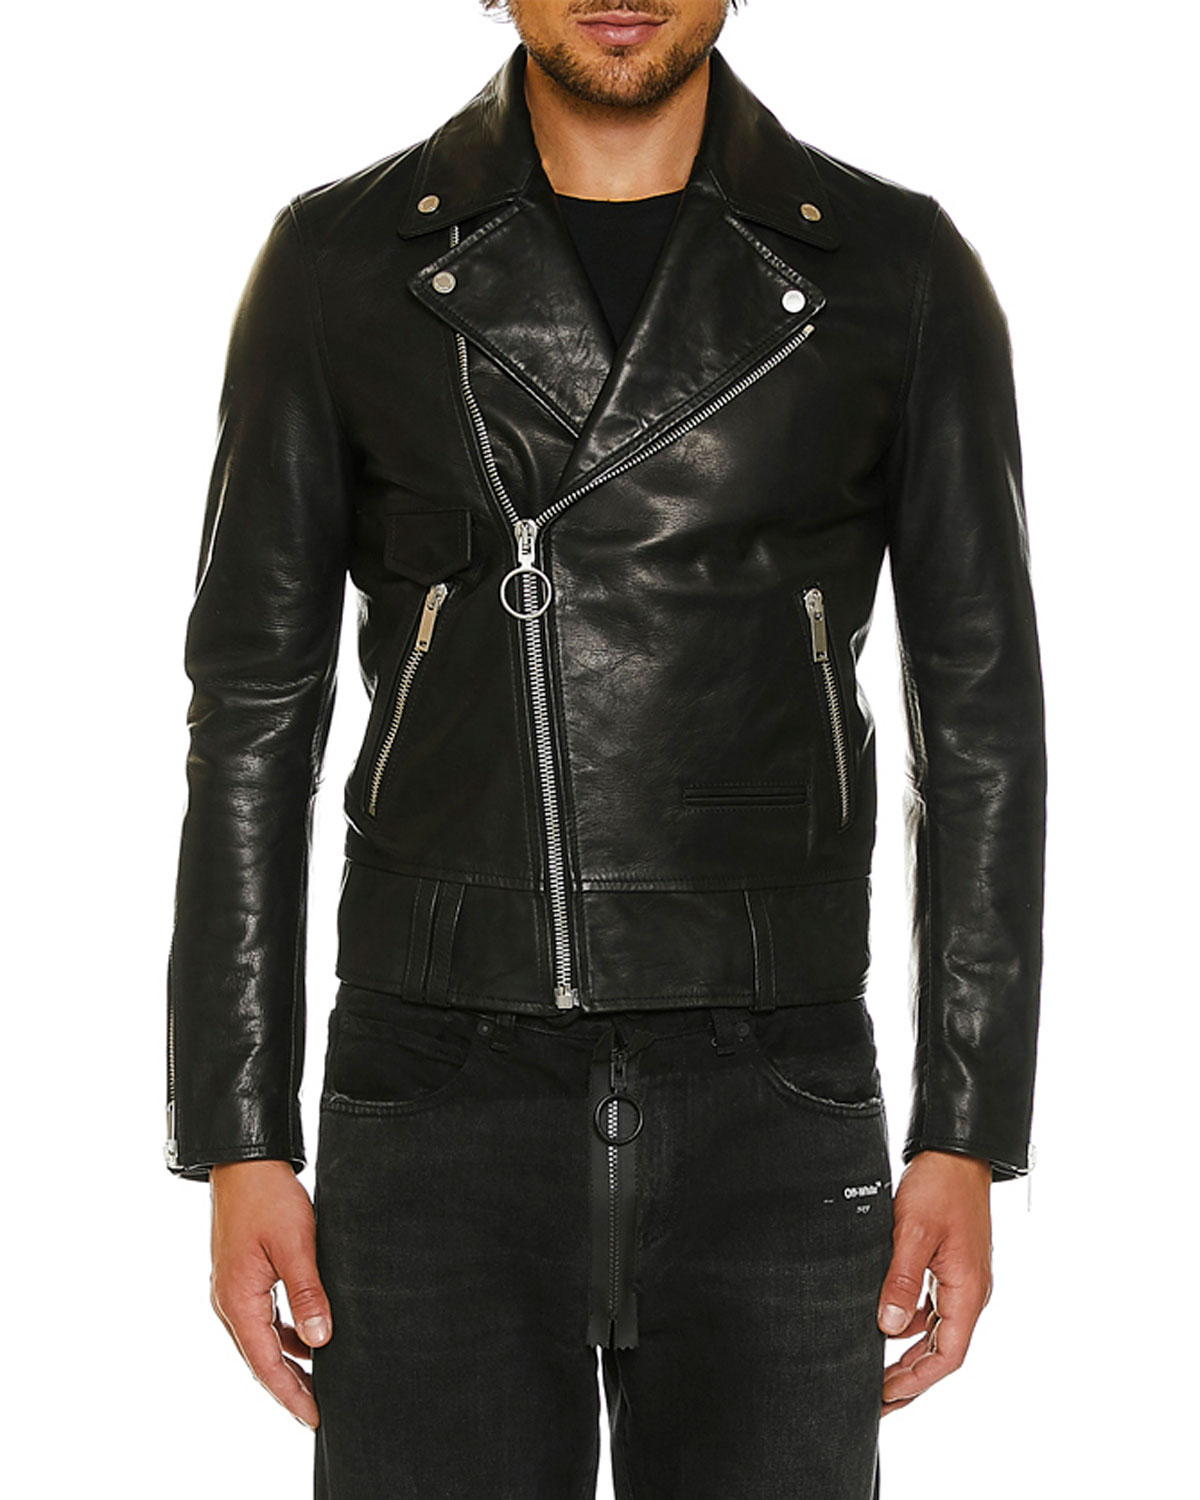 6e4495fc6 Men's Leather Biker Jacket